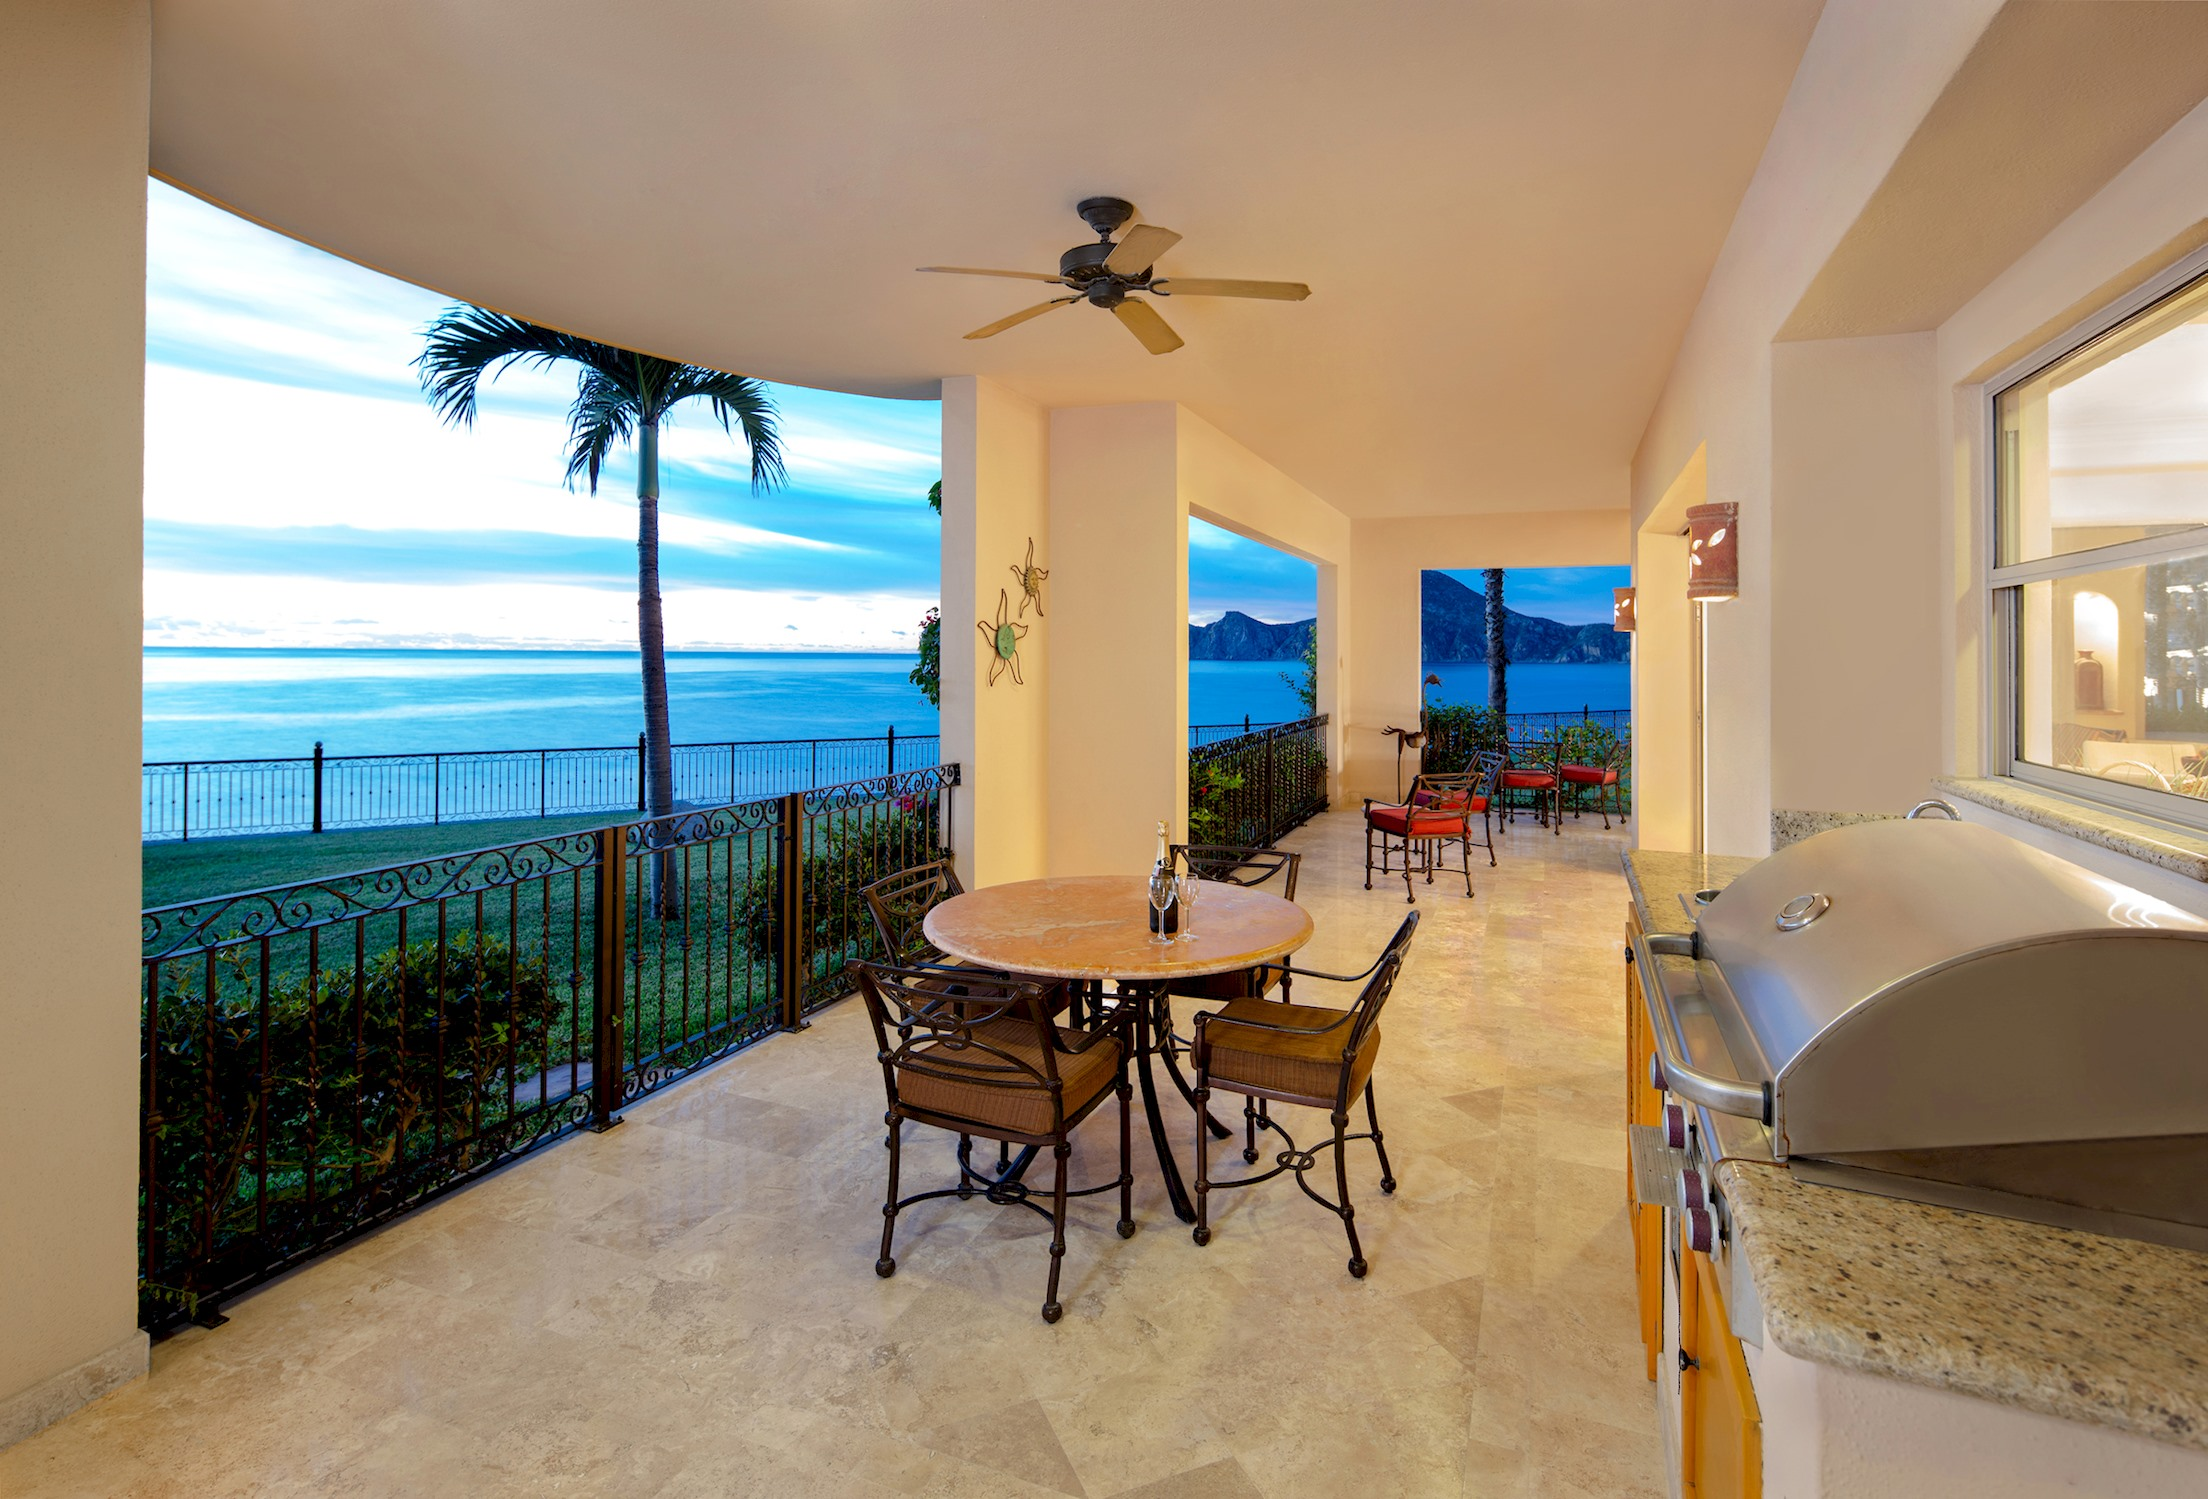 Panoramic Oceanfront Villa With Amazing Views Of The Ocean - 3101 photo 22101735